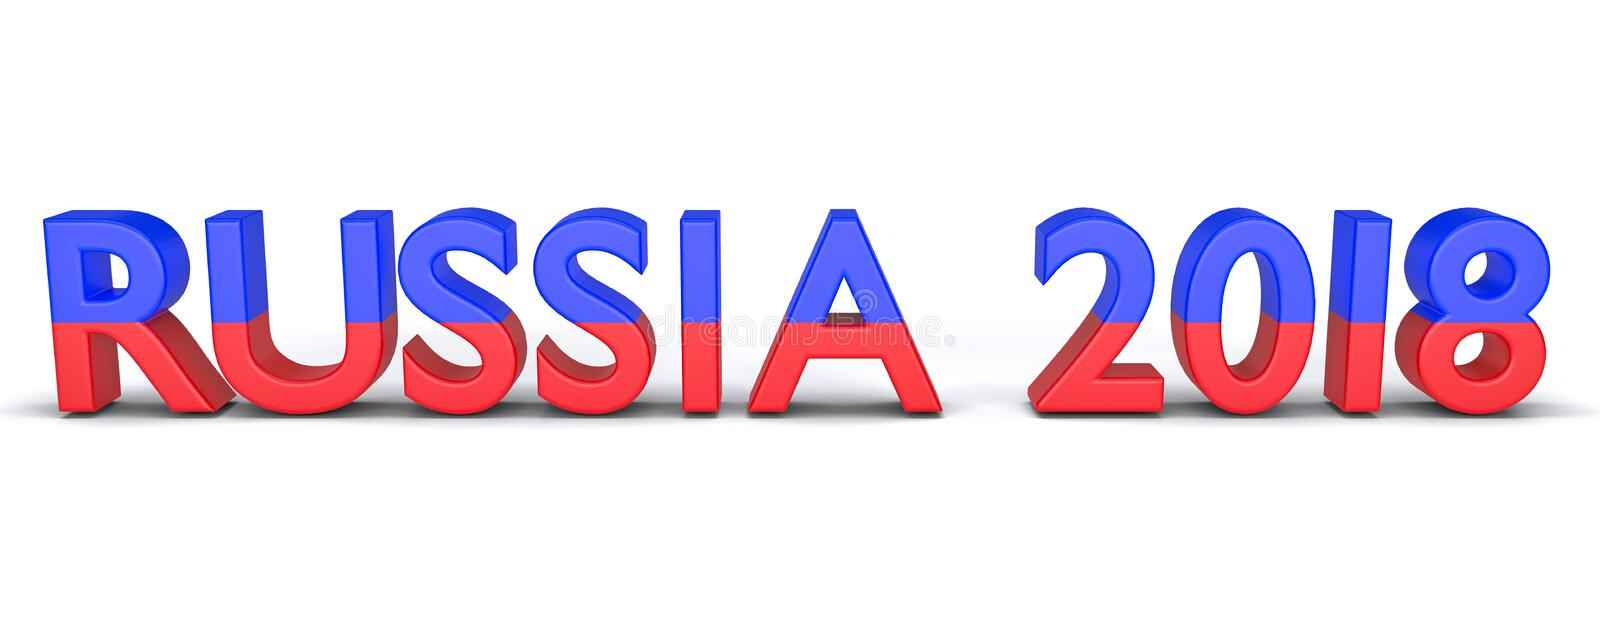 3d rendered Russia 2018 royalty free illustration